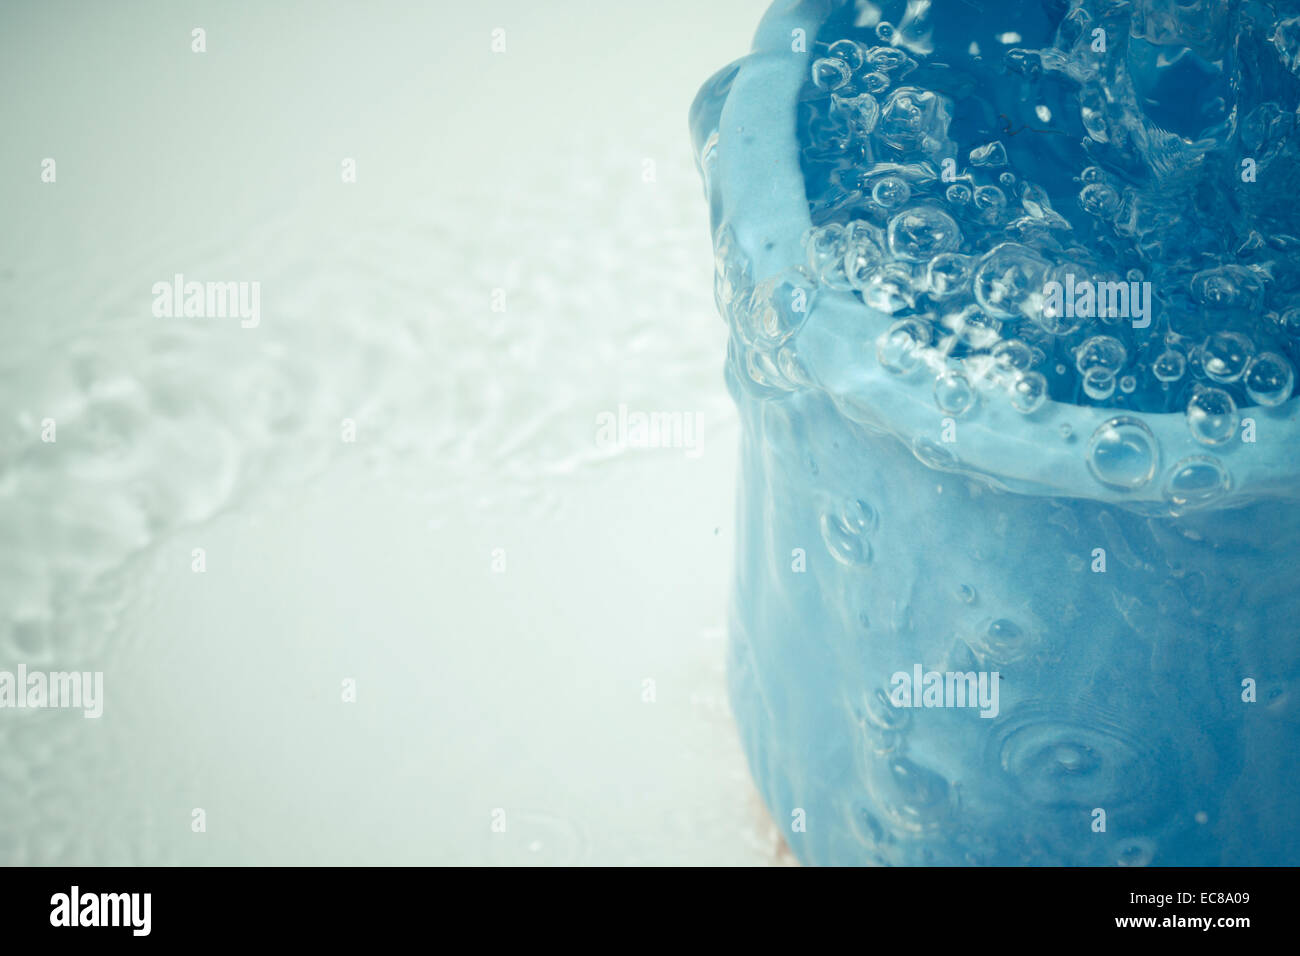 Tasse pot contenant le mouvement aux projections d'eau Photo Stock